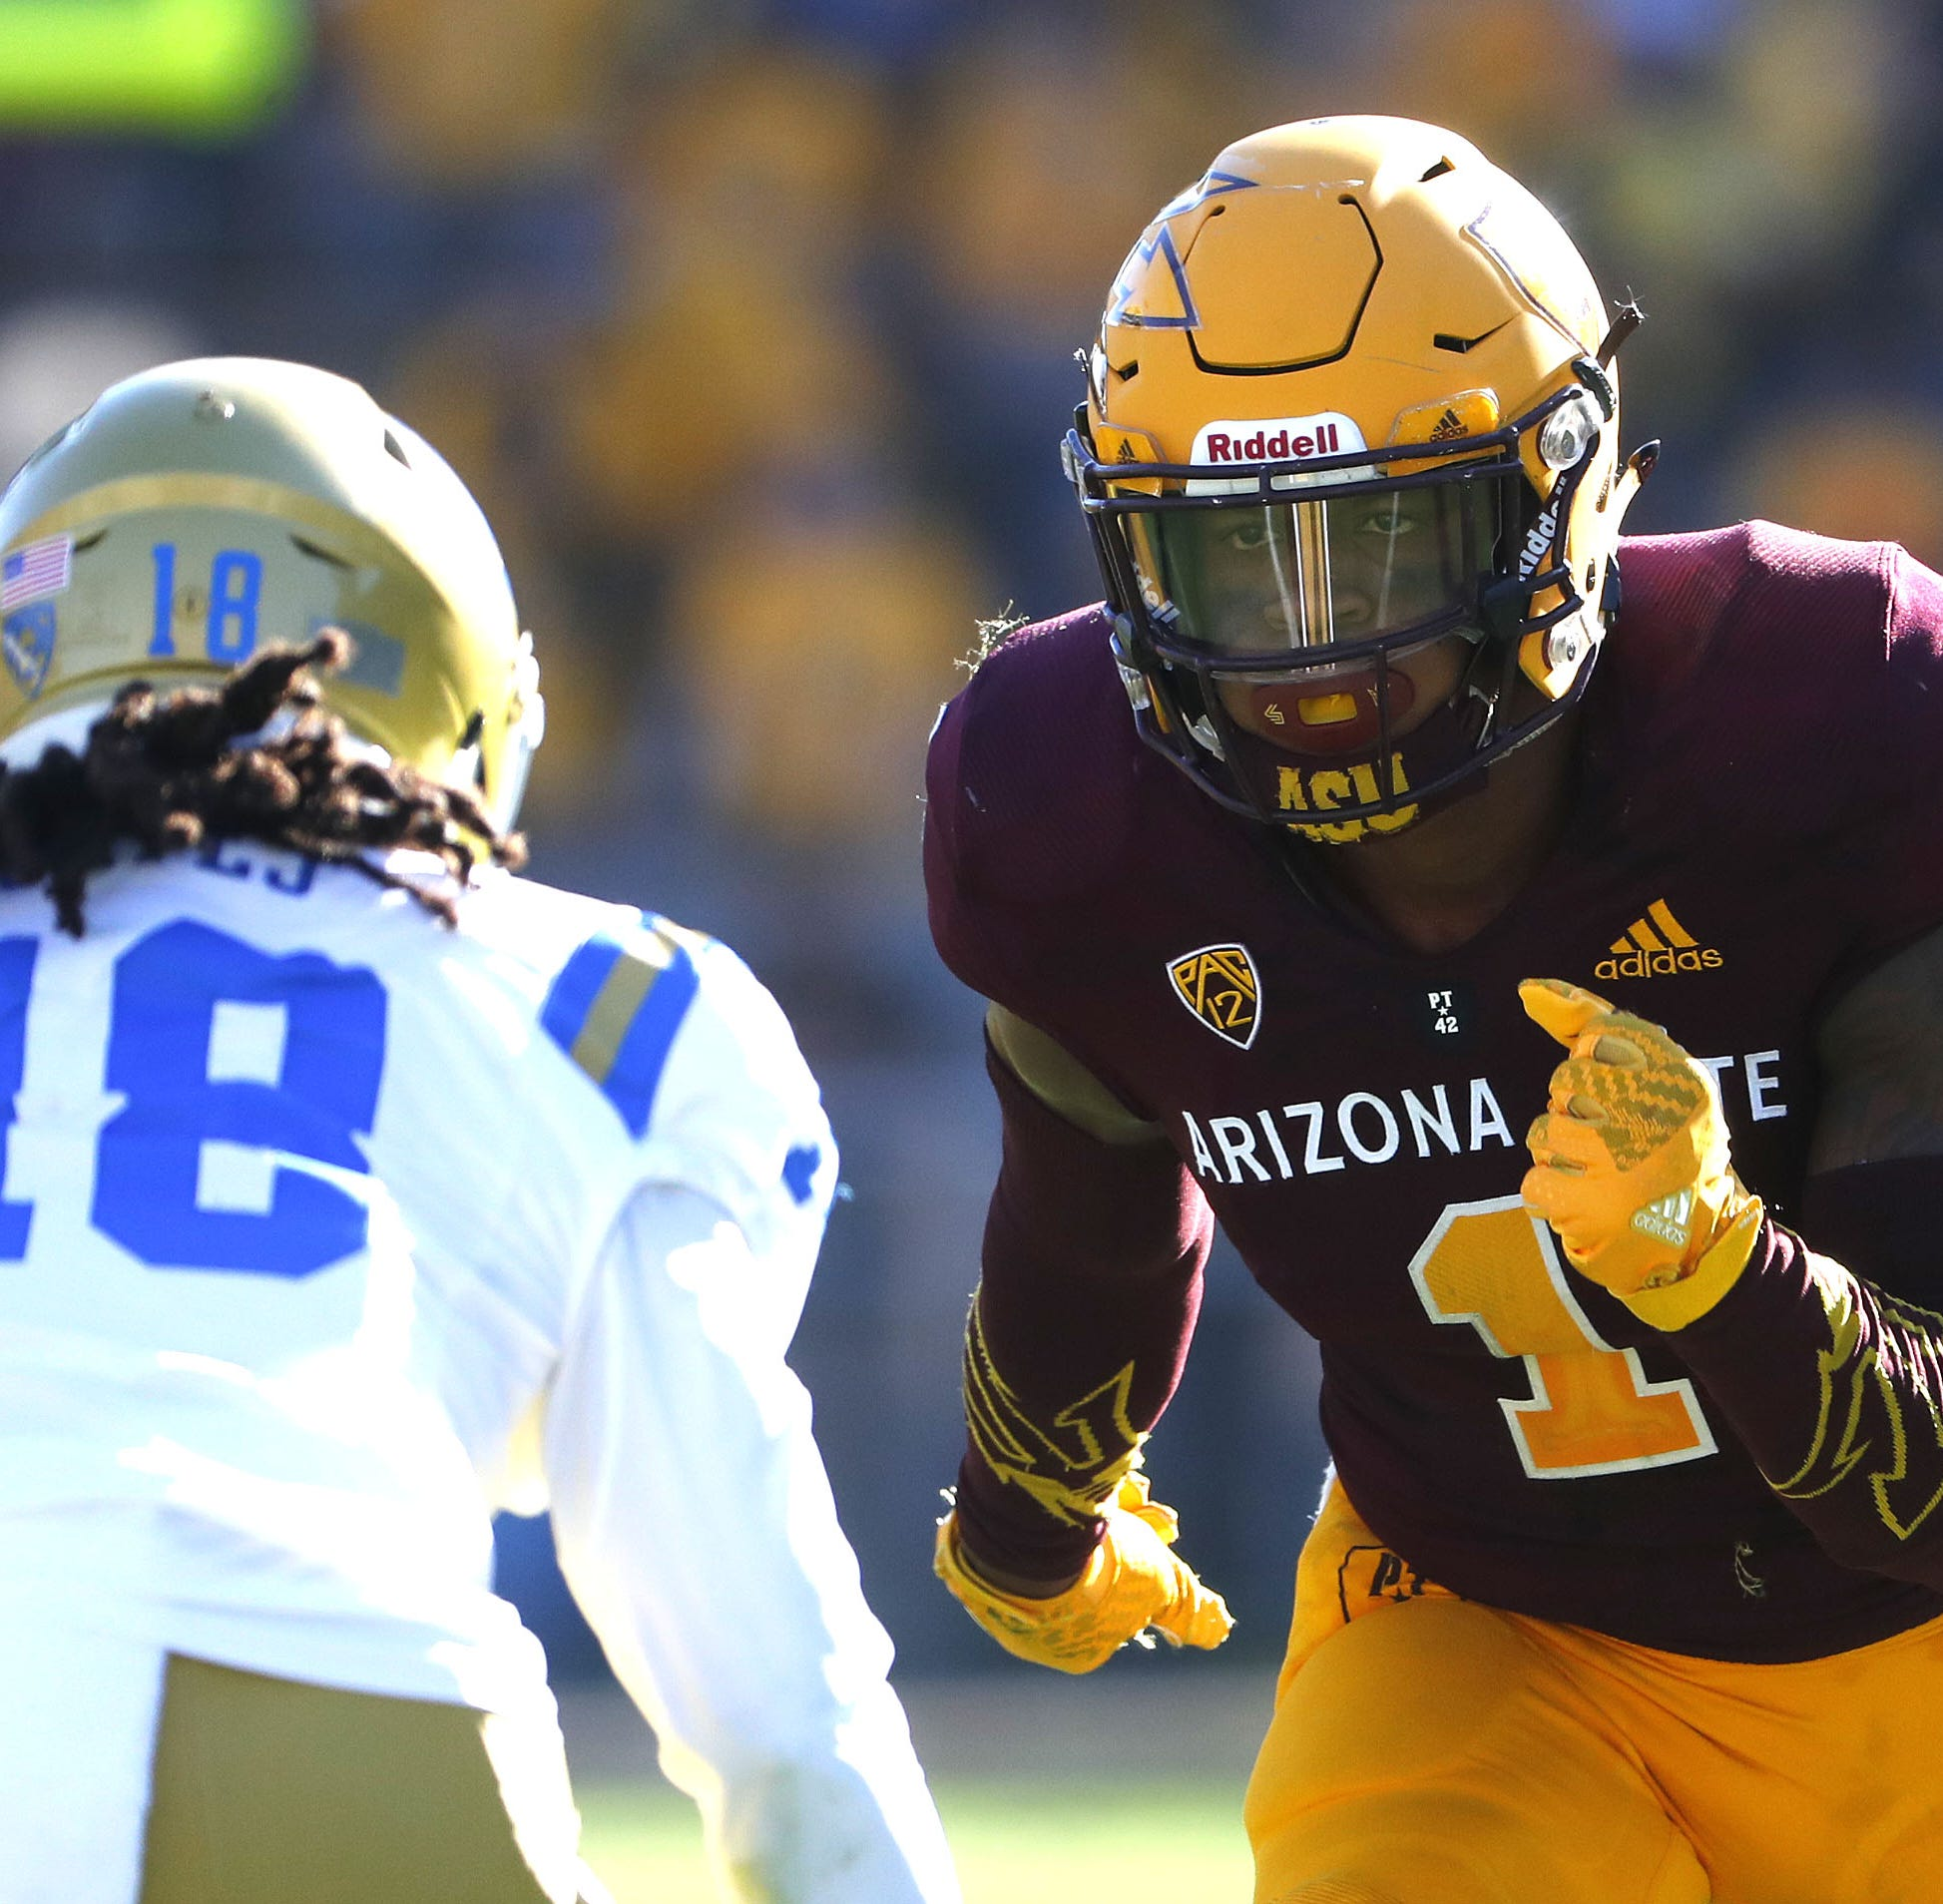 Cardinals target receivers at NFL combine; former ASU star N'Keal Harry in their sights